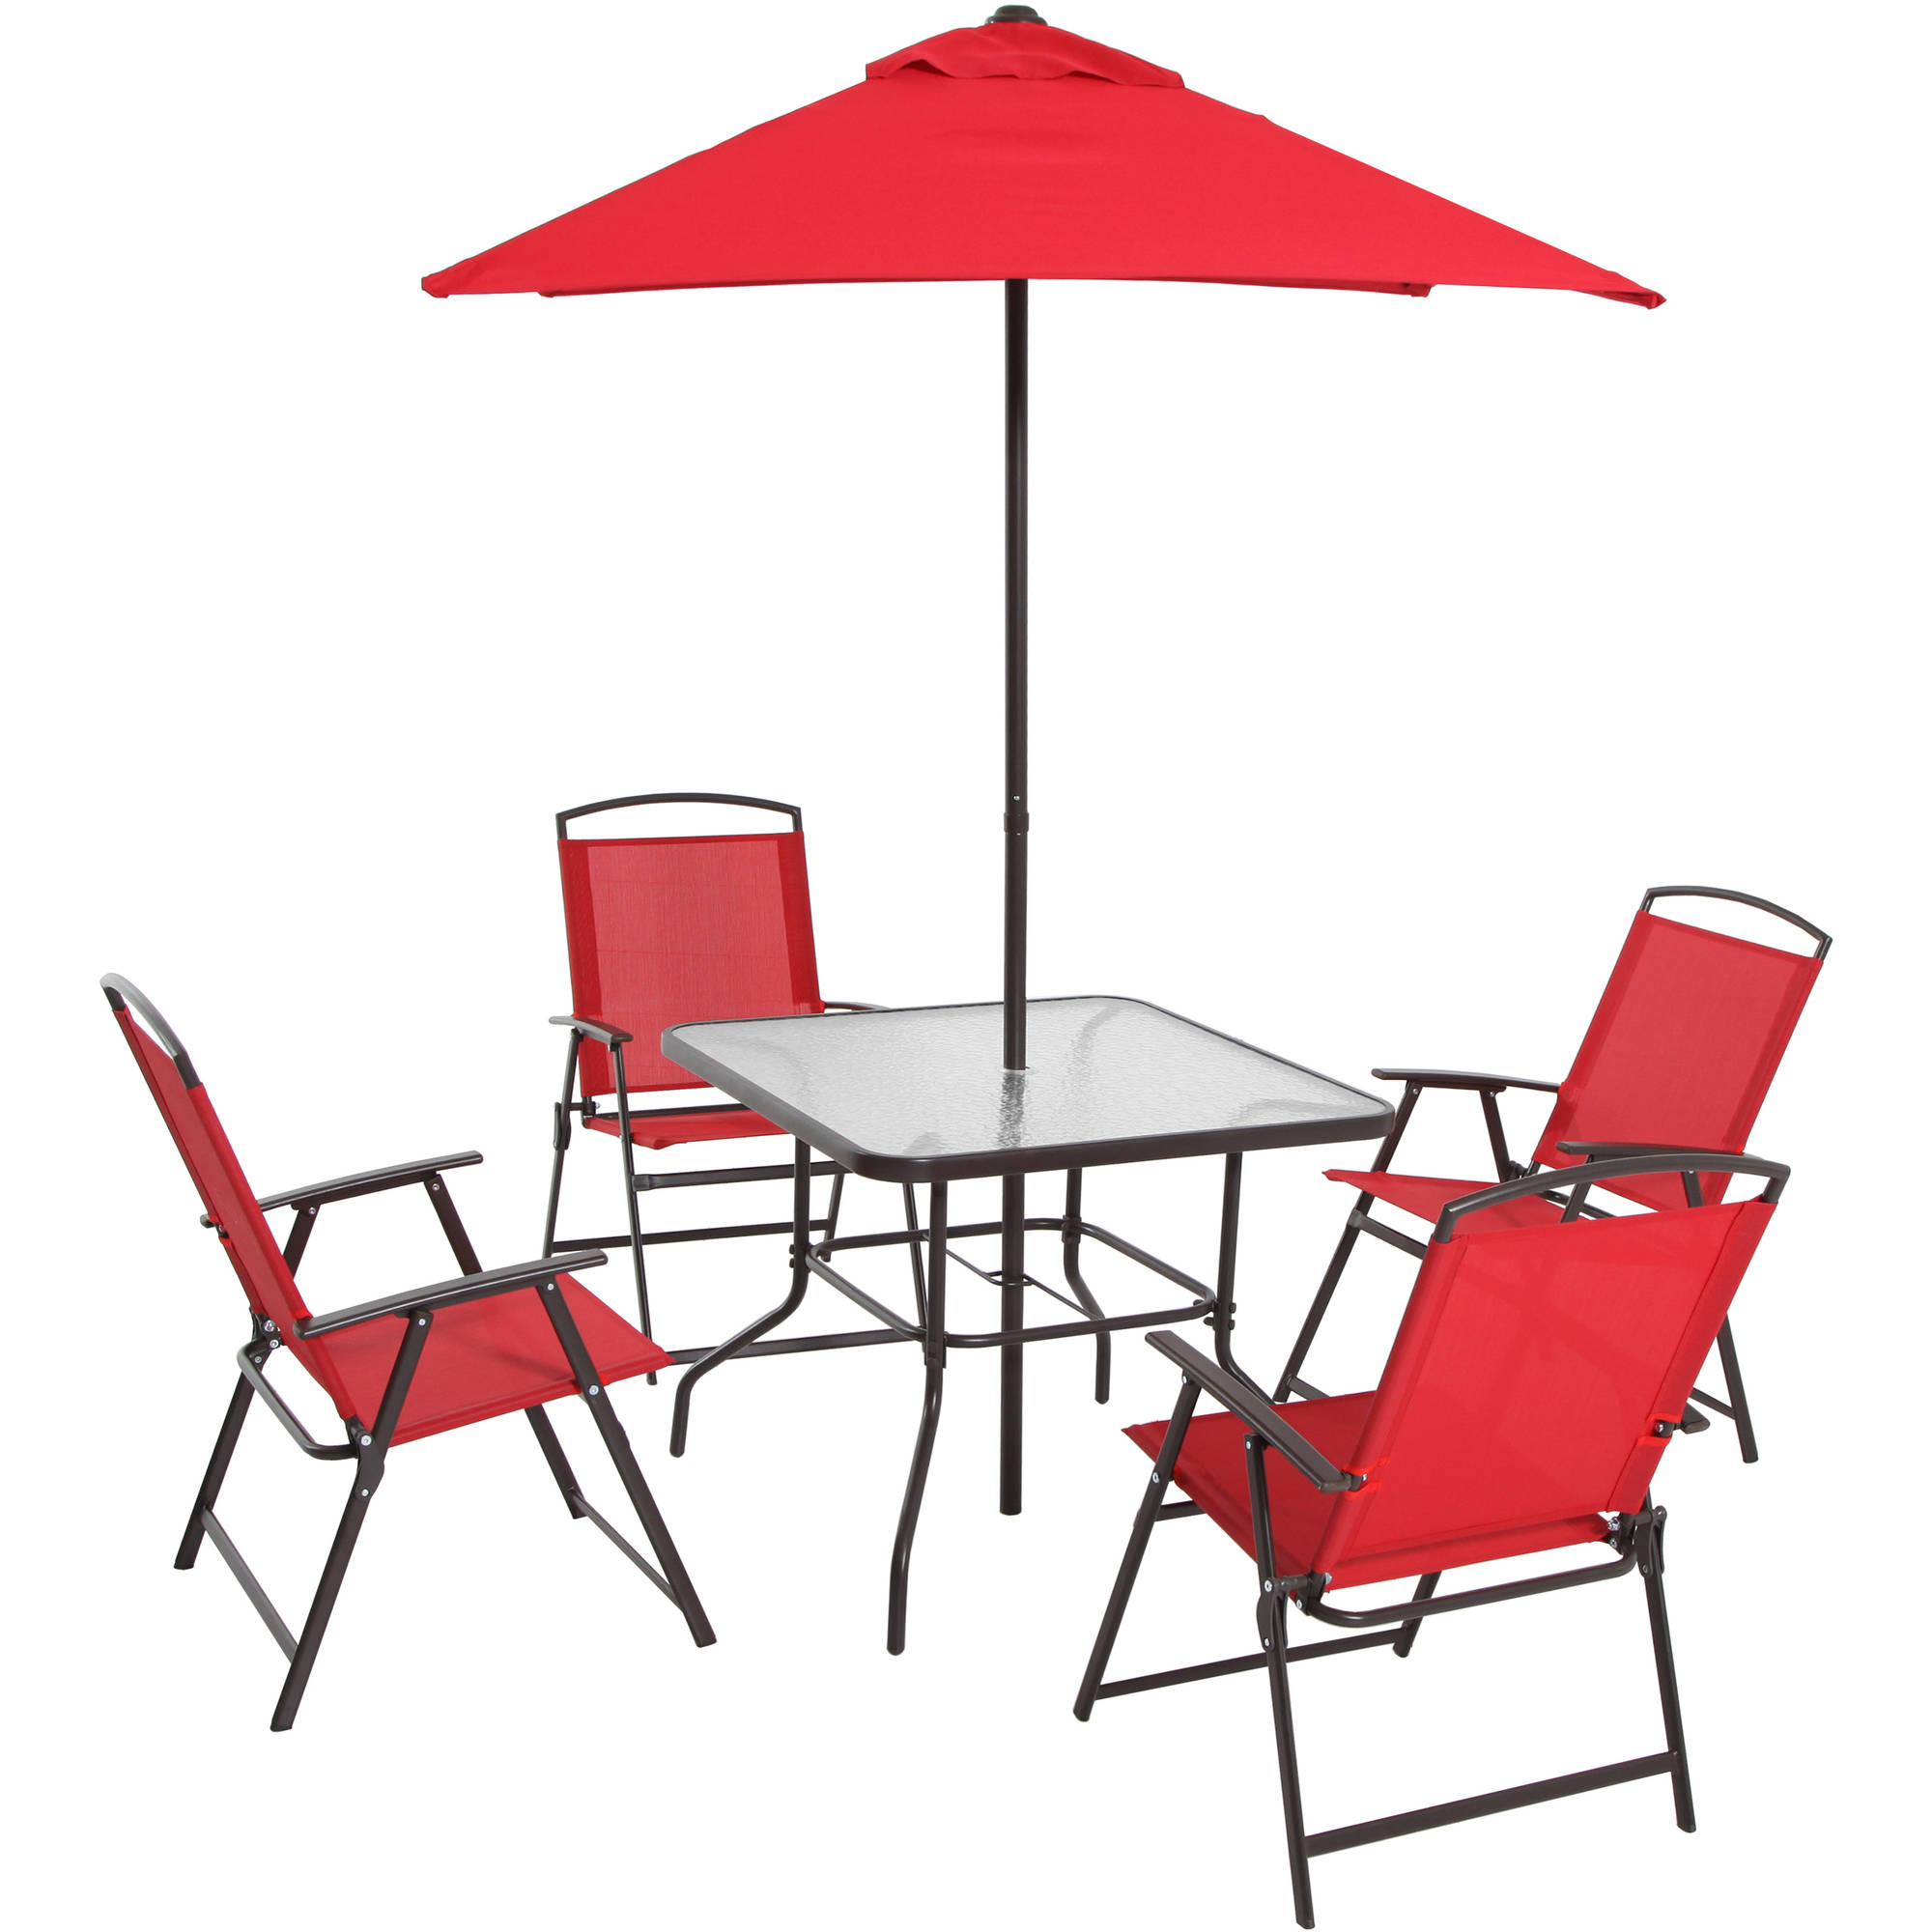 Outdoor Patio Furniture Dining Table Mainstays Albany Lane 6 Piece Folding Dining Set Multiple Colors